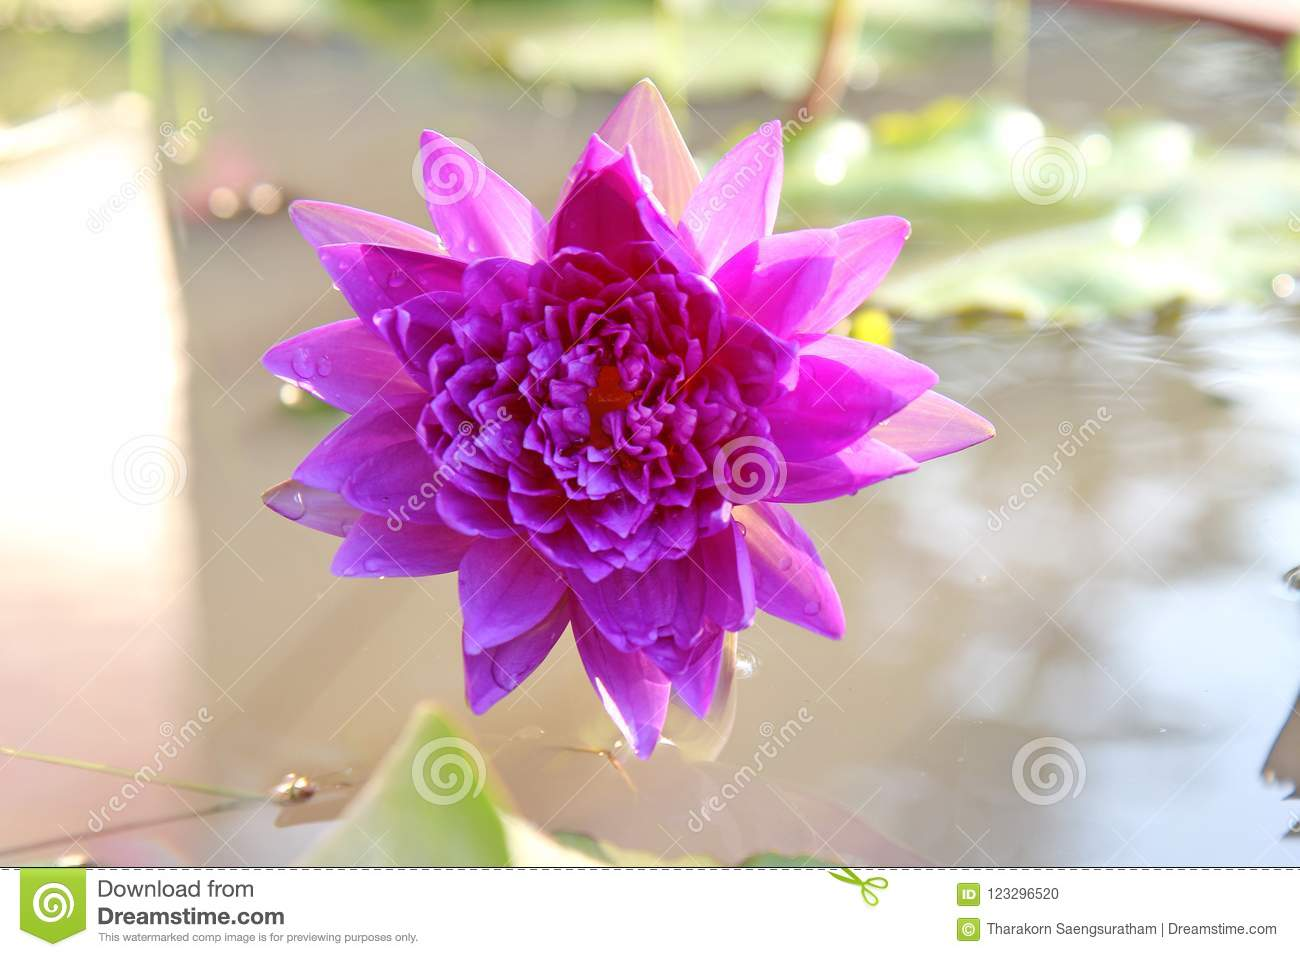 Colorful Lotus Flowers In Bright Colors In A Pool Stock Photo